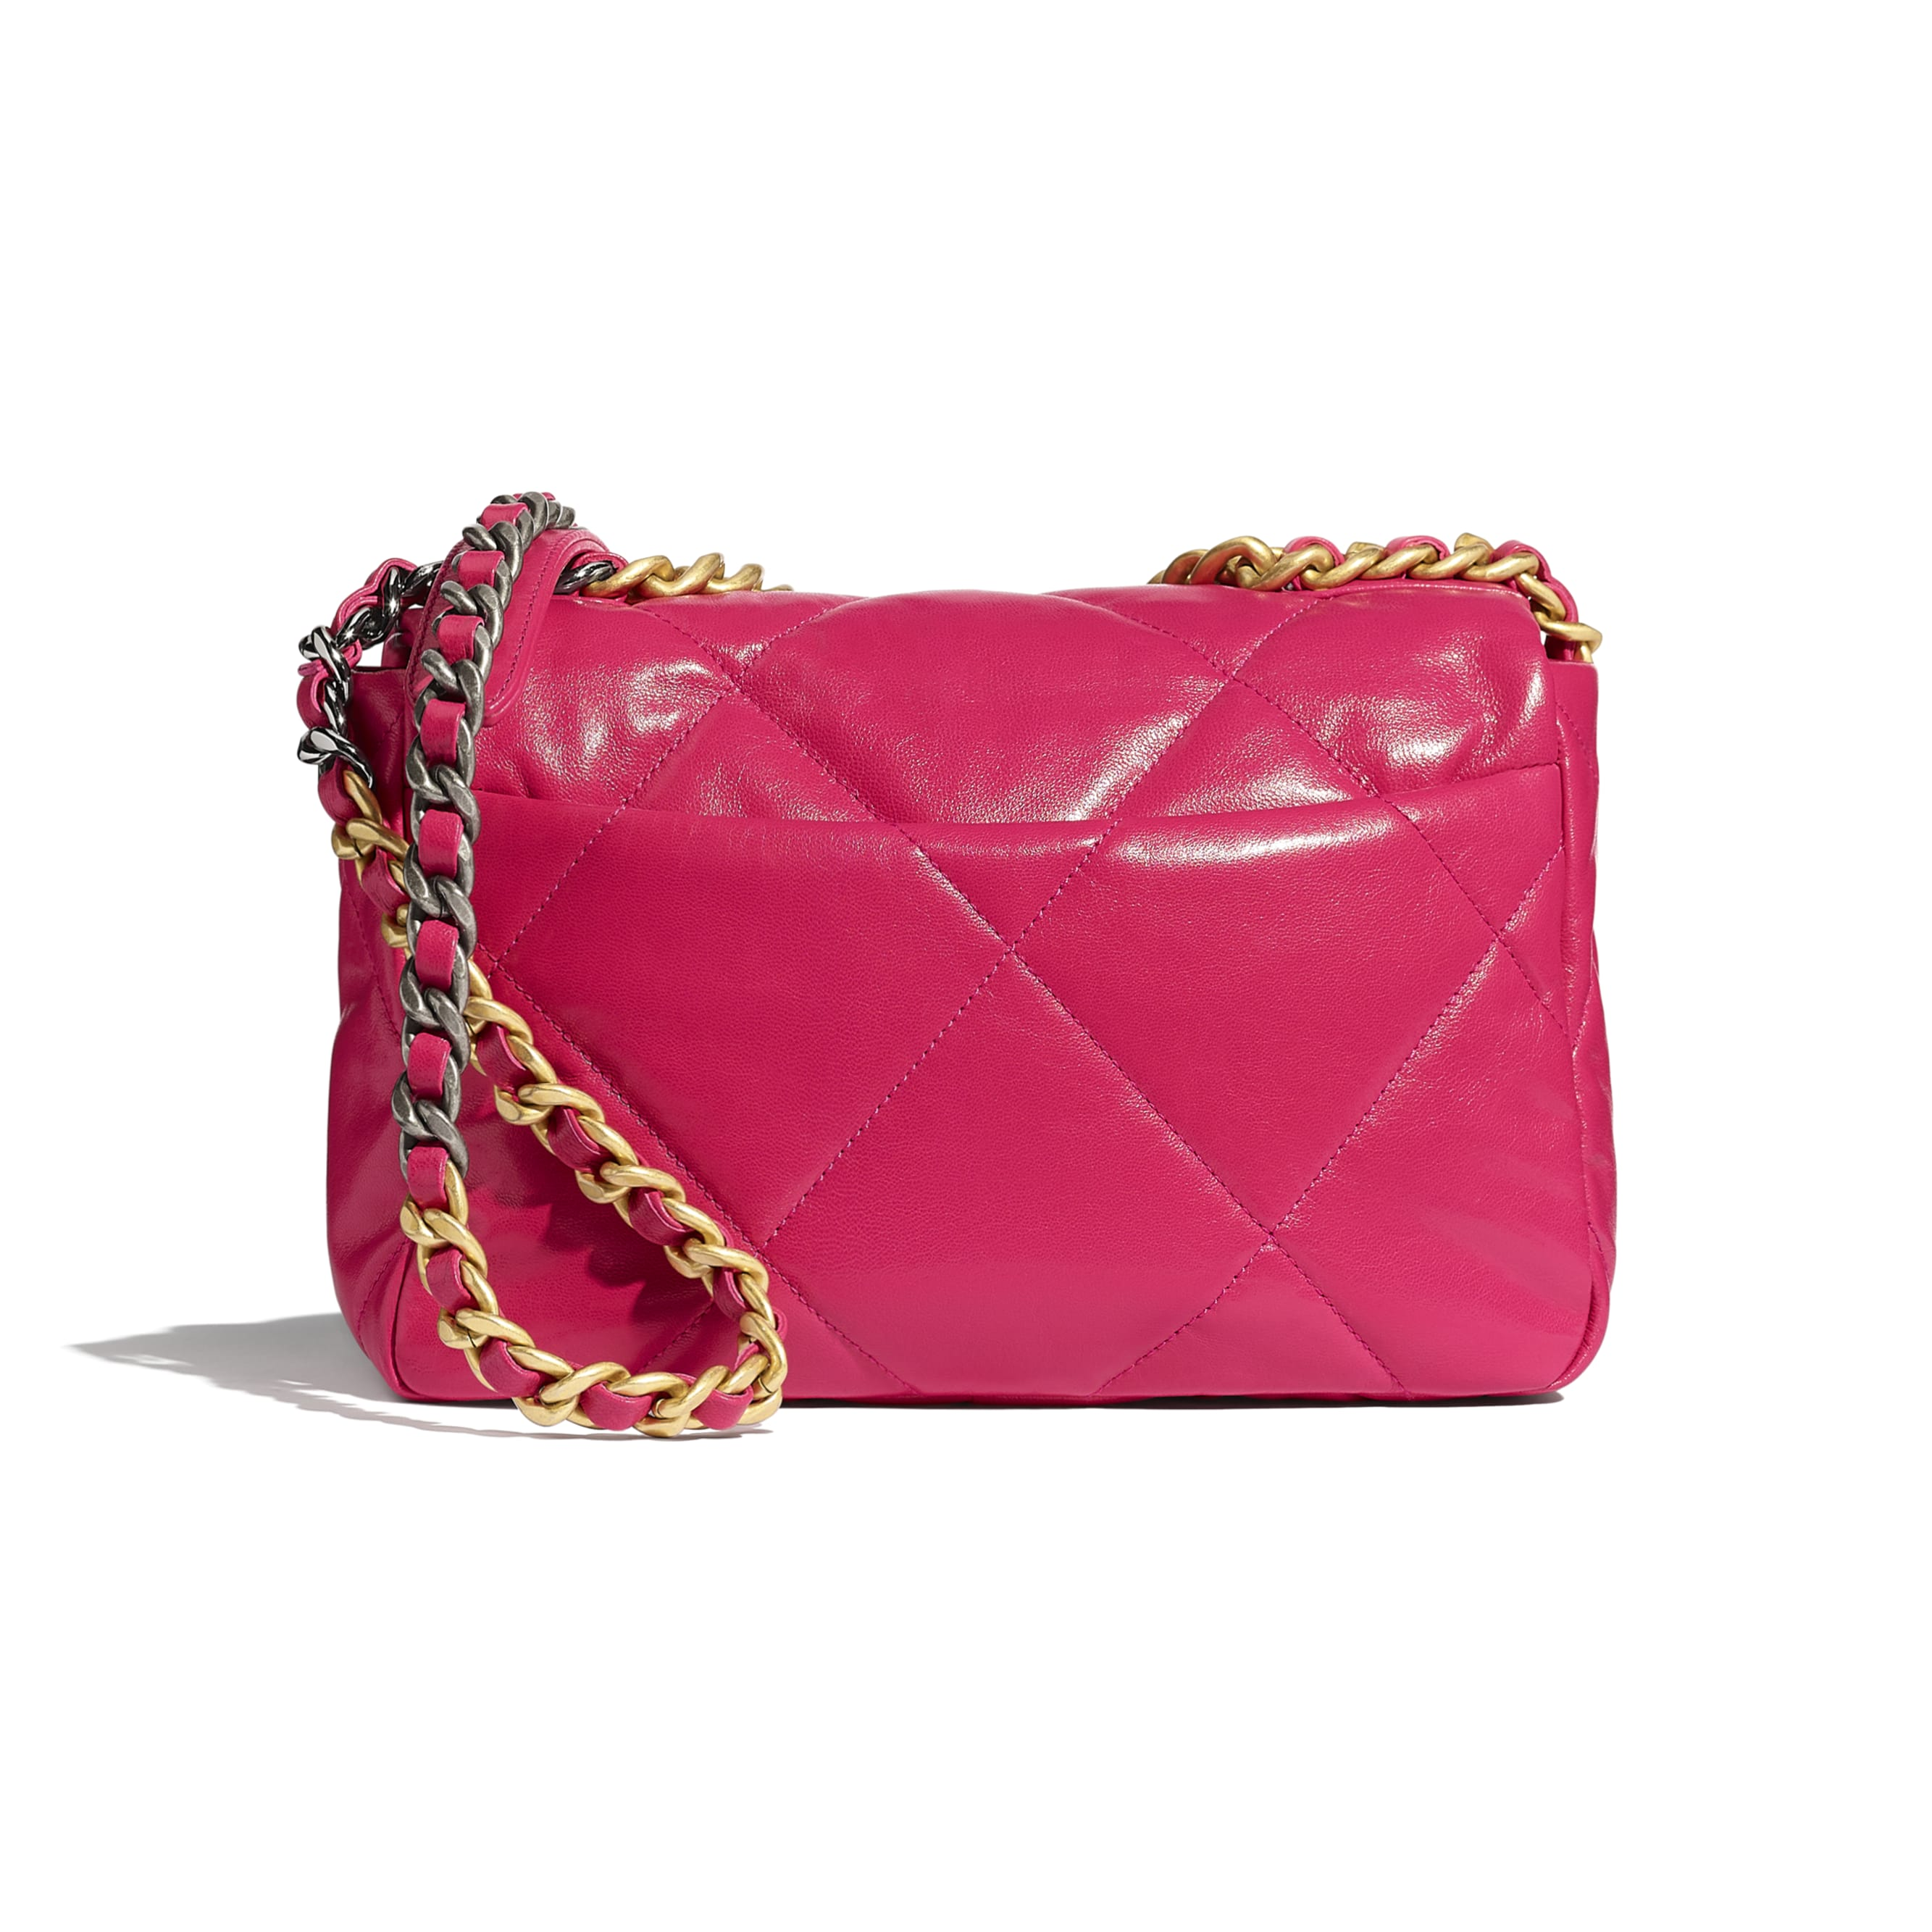 CHANEL 19 Flap Bag - Pink - Goatskin, Gold-Tone, Silver-Tone & Ruthenium-Finish Metal - CHANEL - Alternative view - see standard sized version